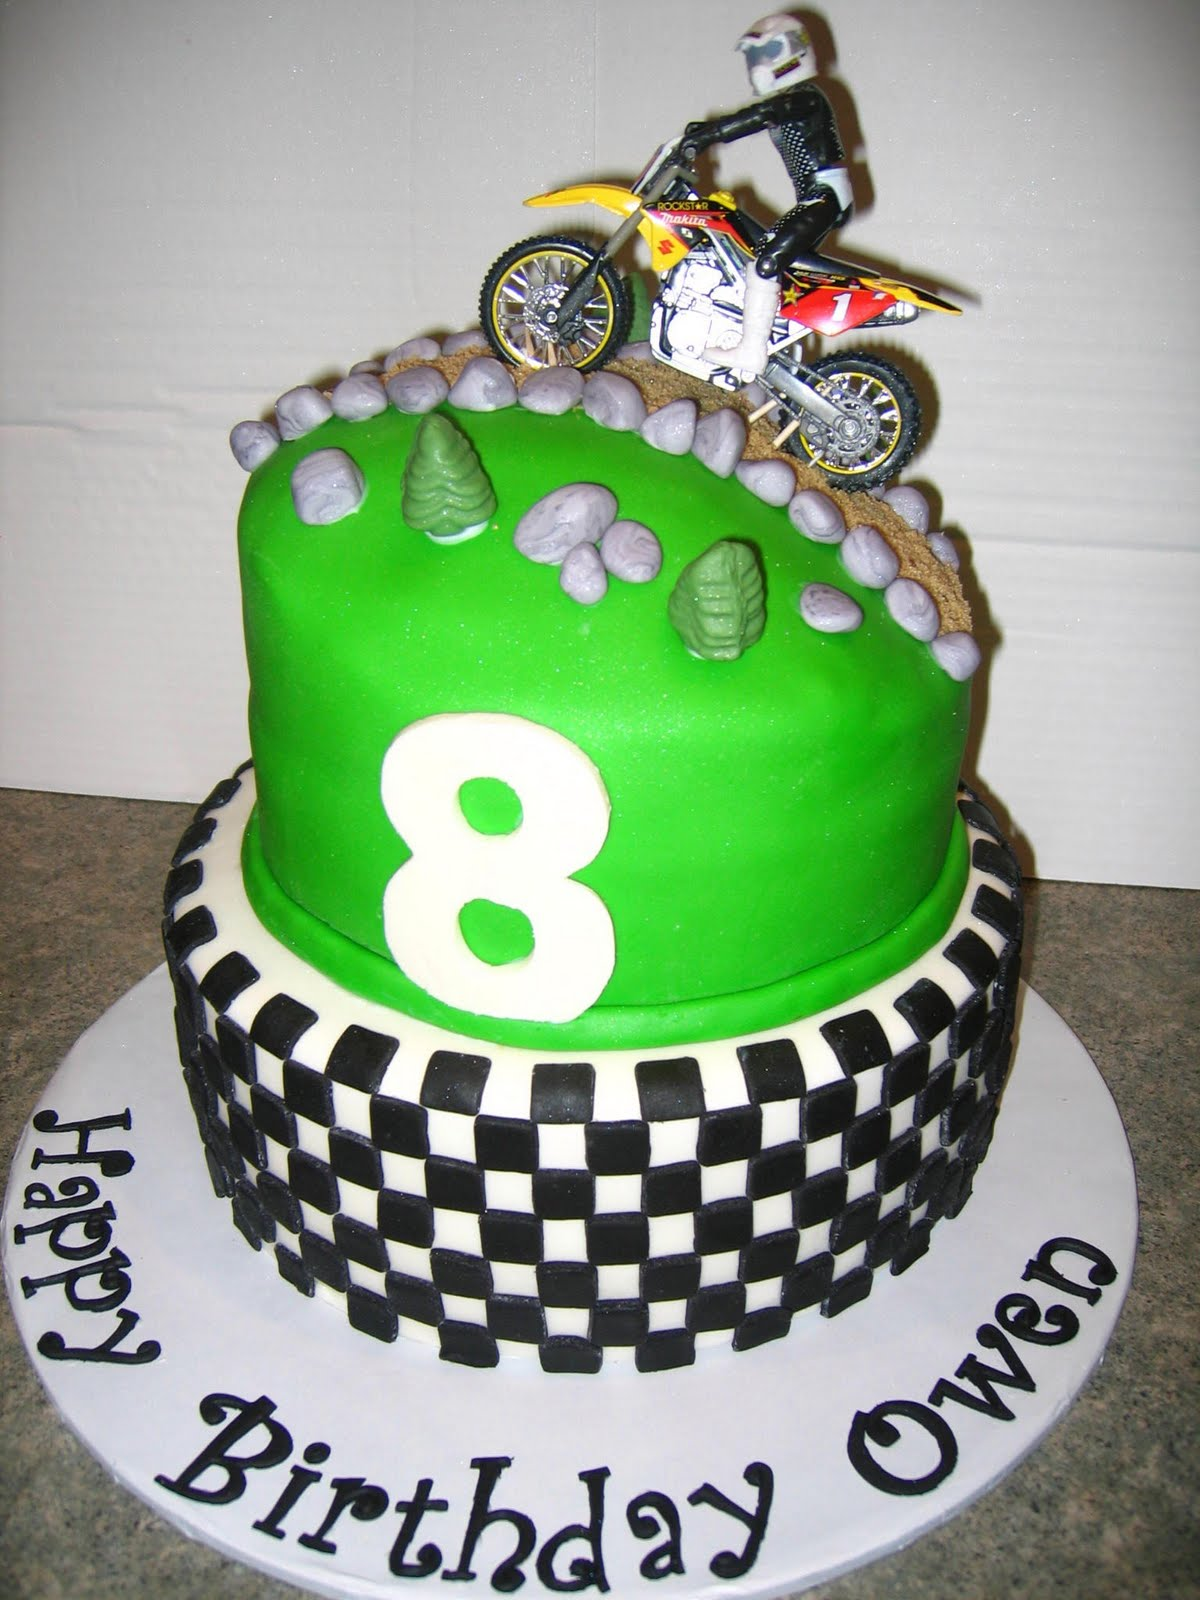 dirt bike cake - photo #41